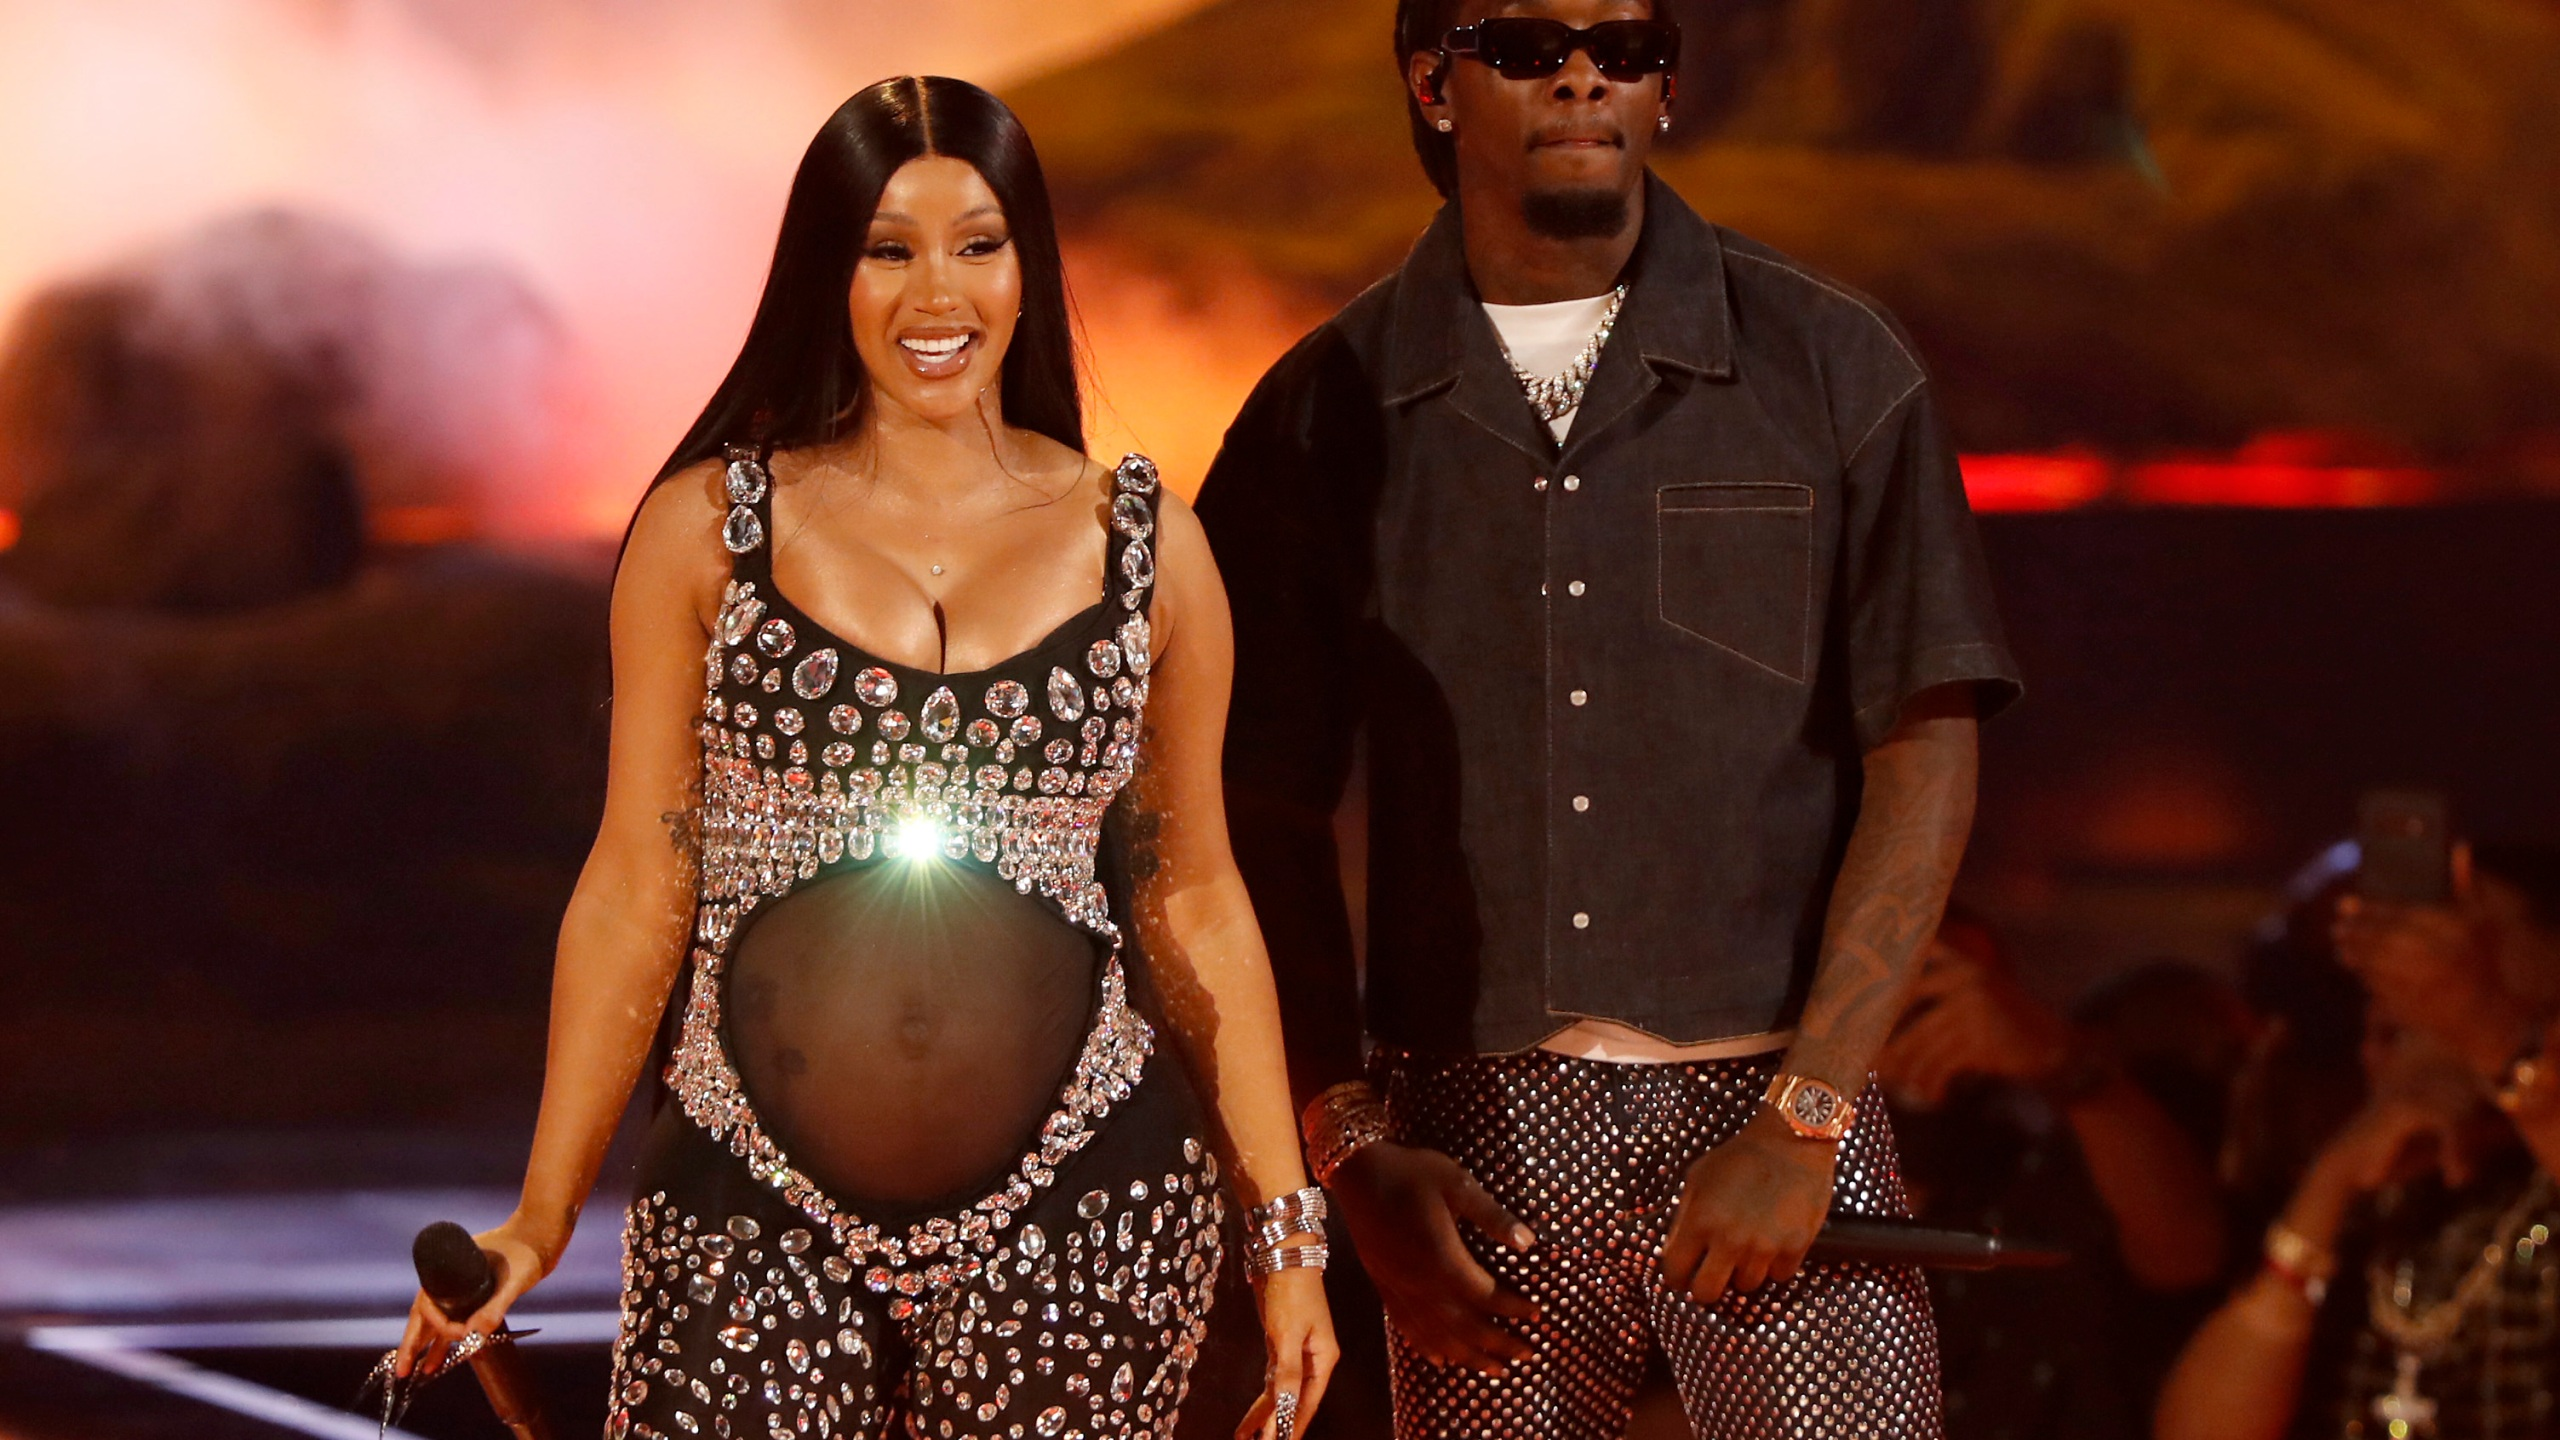 Cardi B and Offset of Migos perform onstage at the BET Awards 2021 at Microsoft Theater on June 27, 2021 in Los Angeles, California. (Photo by Johnny Nunez/Getty Images for BET)